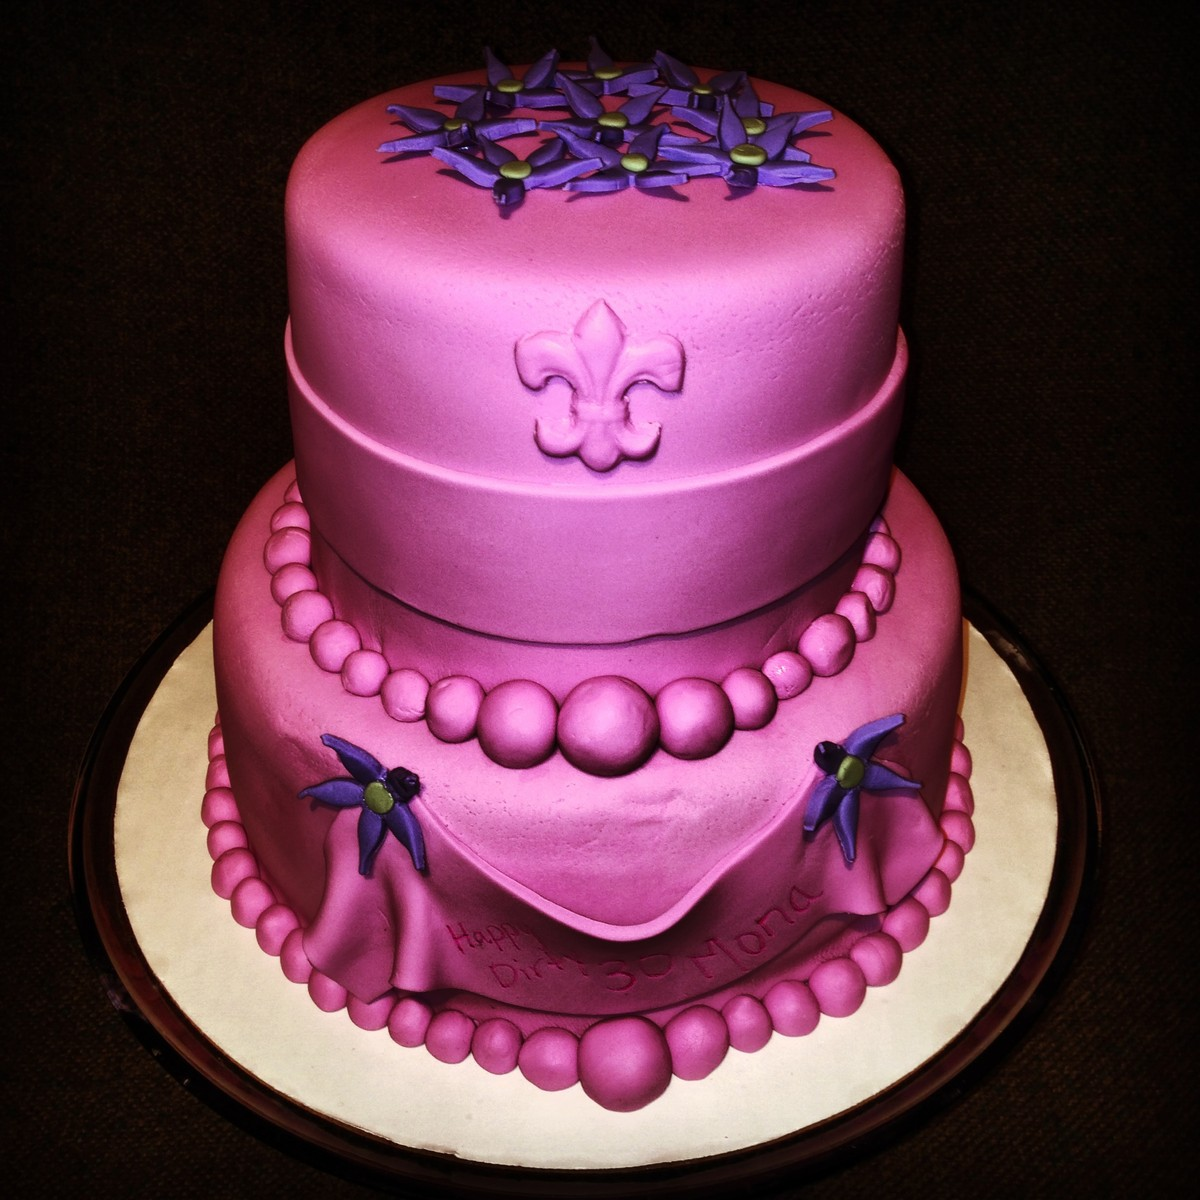 Canton Wedding Cakes - Reviews for Cakes